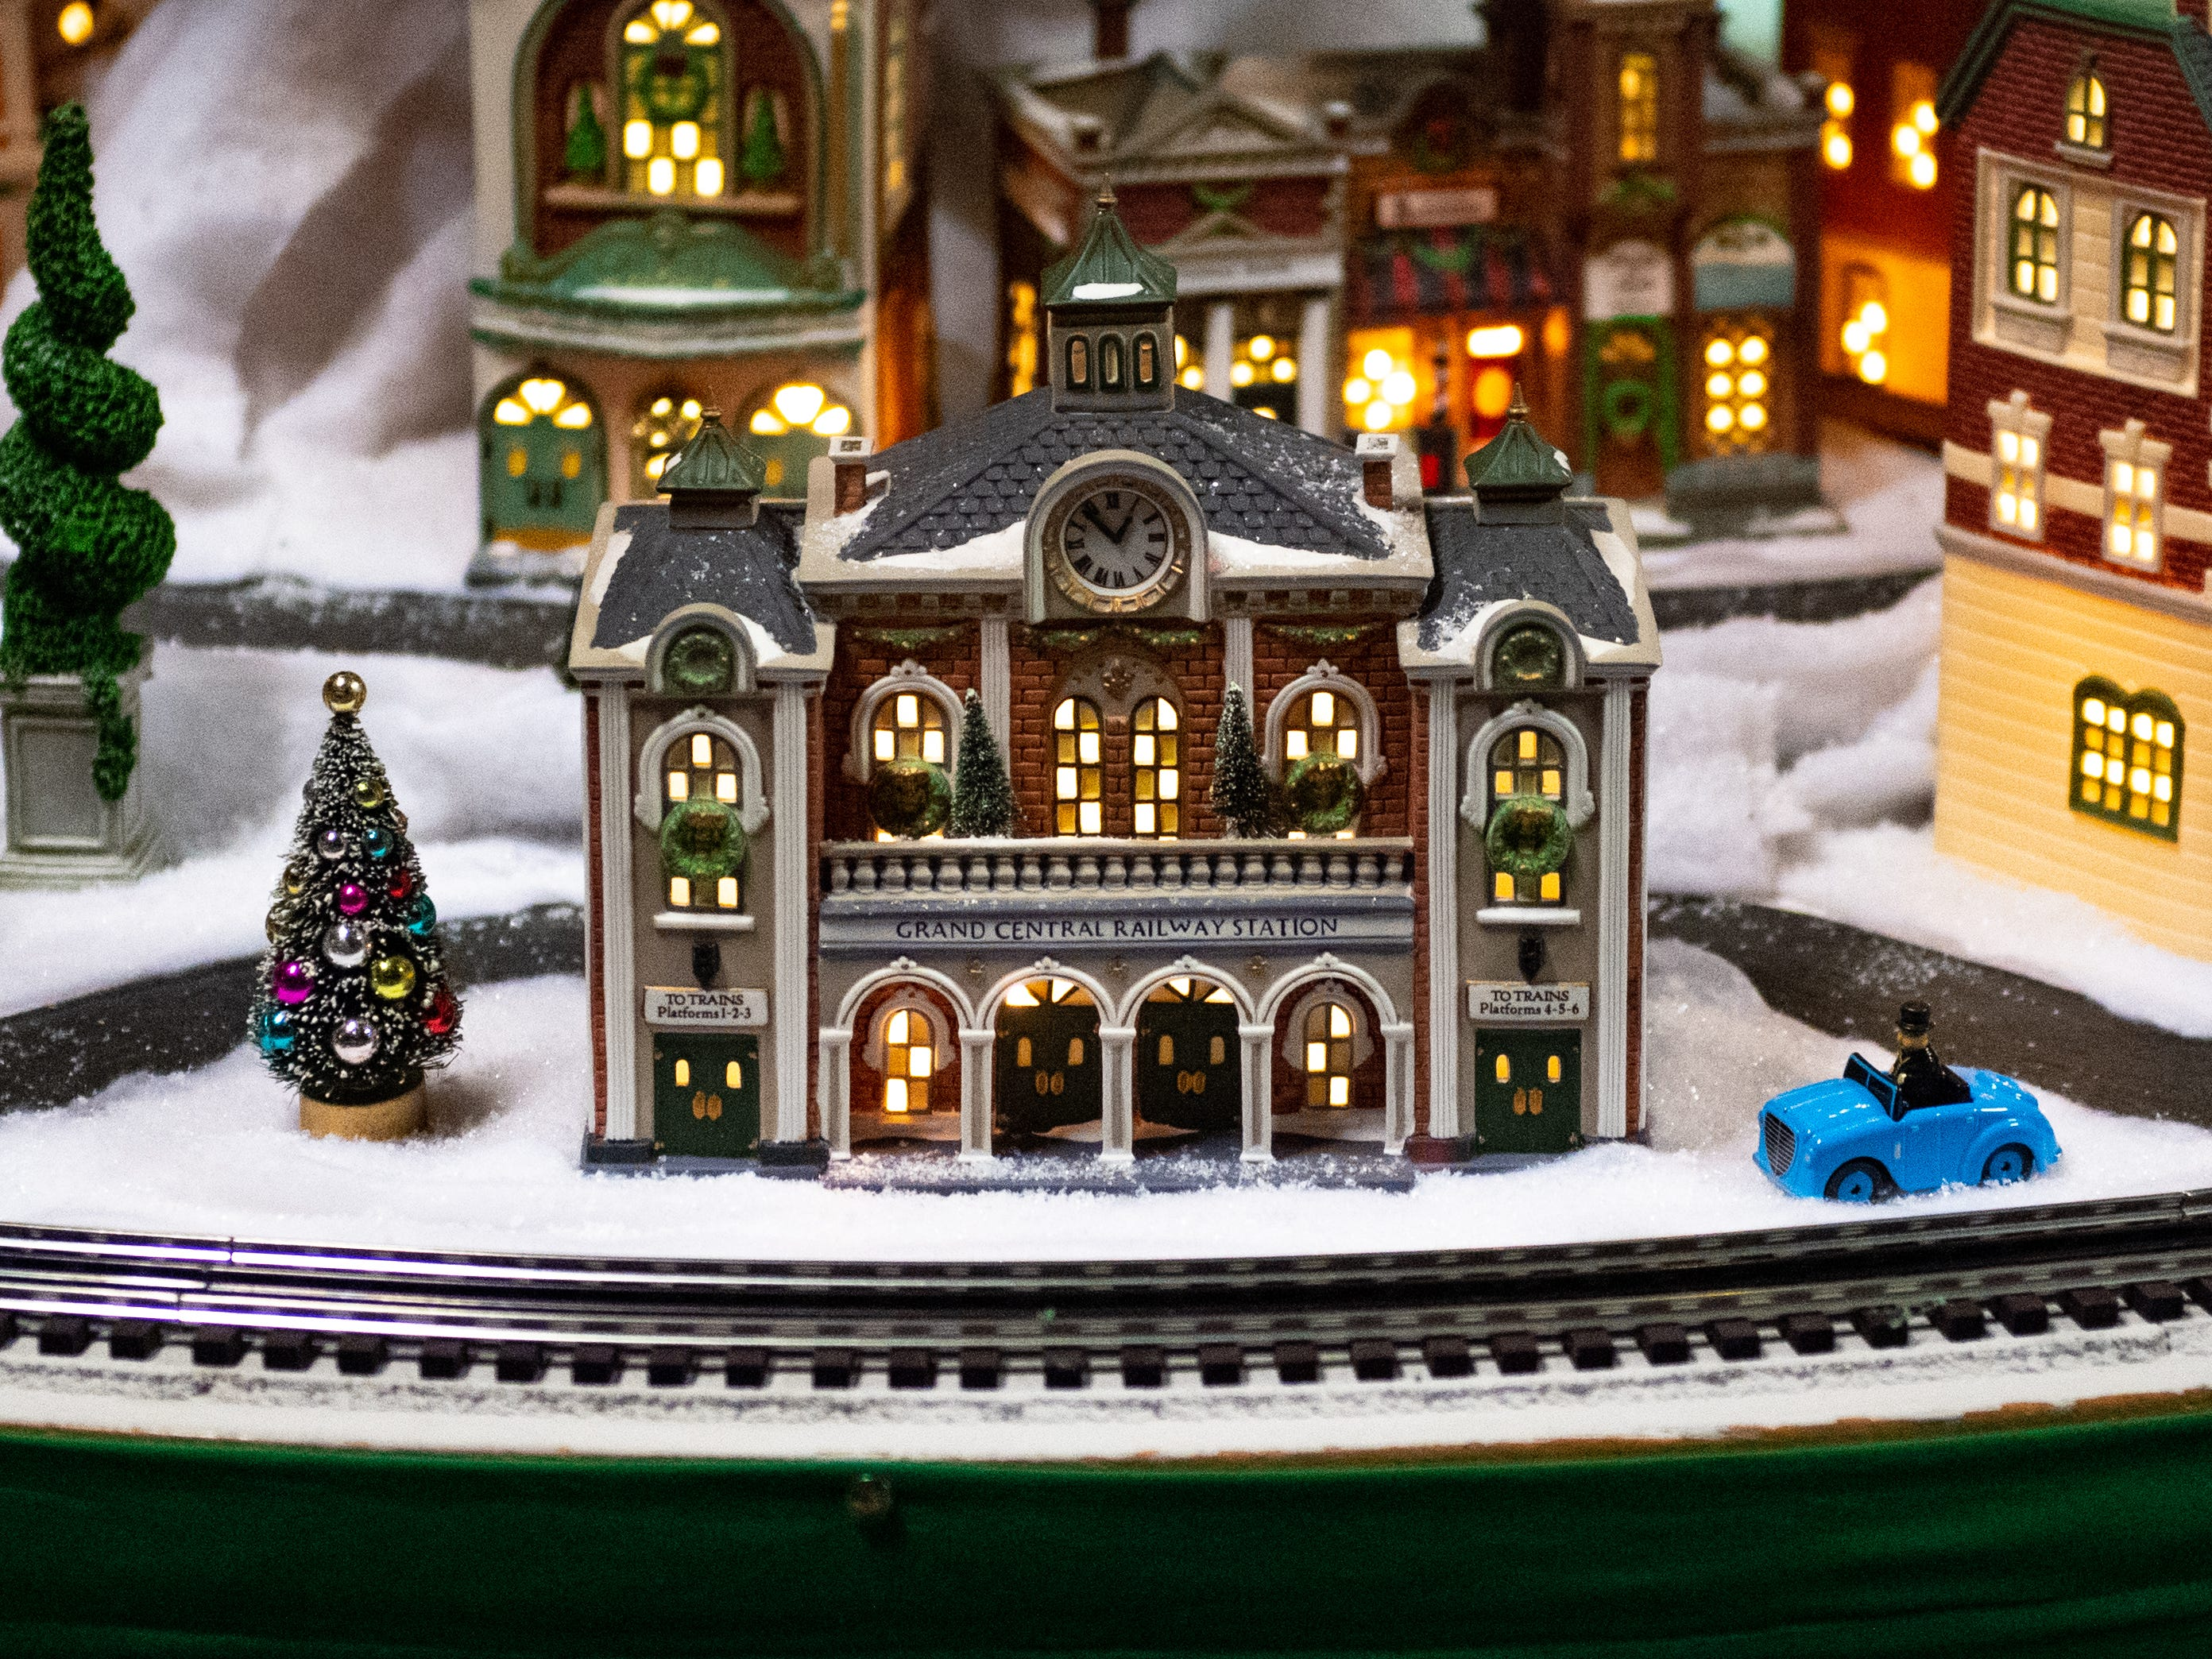 Some rooms at Christmas Magic 2018 are filled with model trains and cities, Thursday, November 29, 2018.